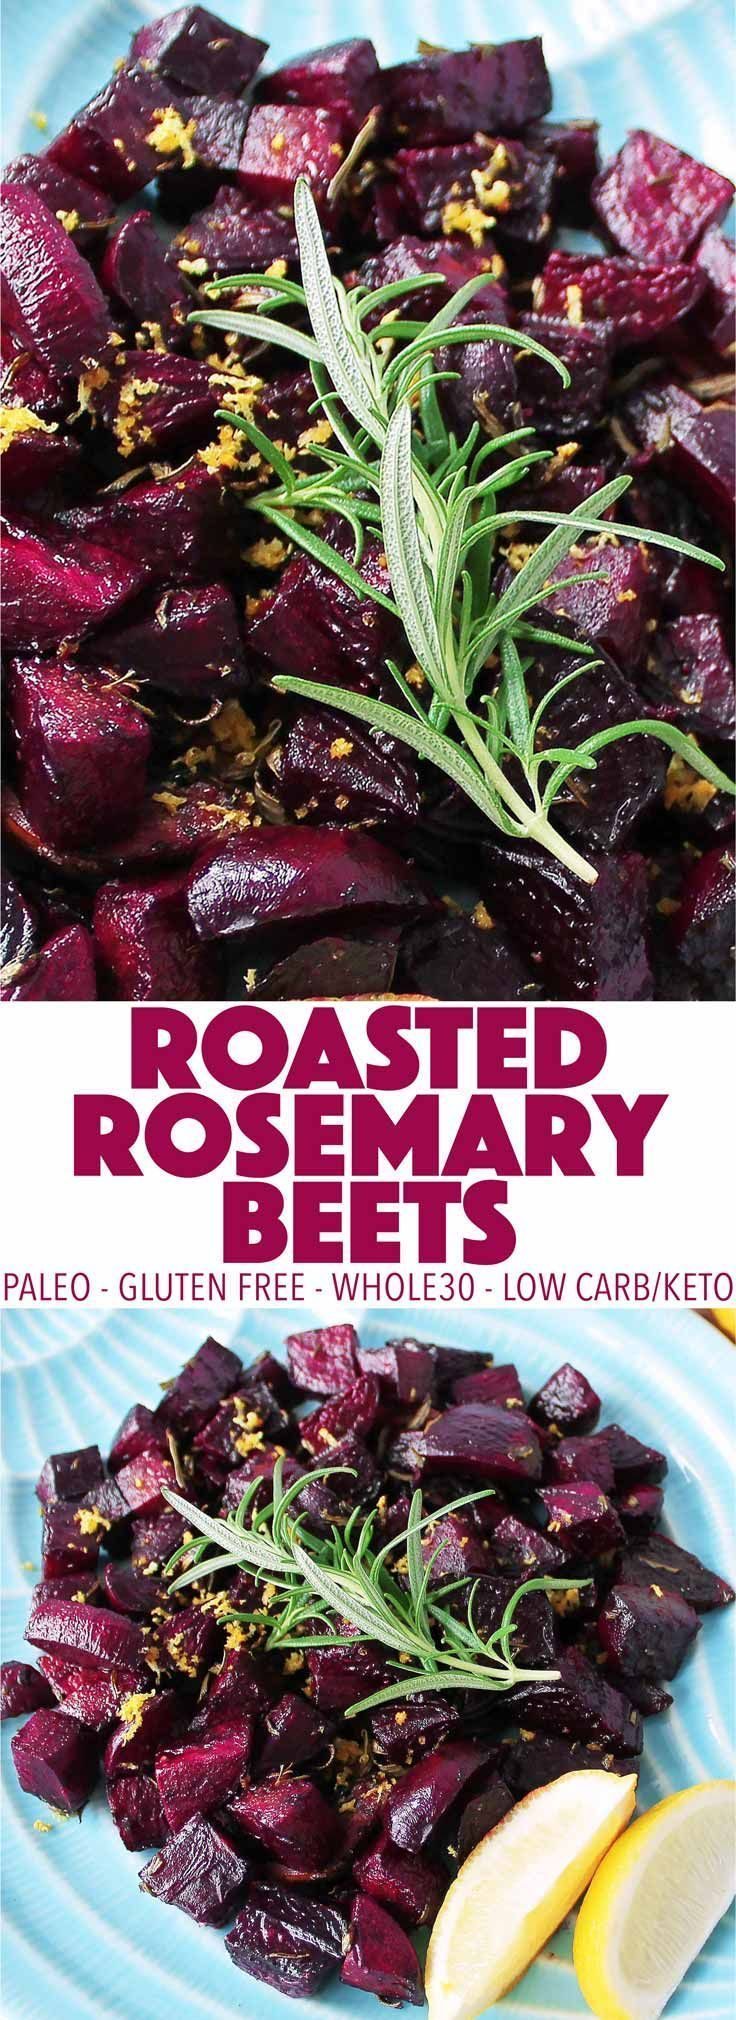 An easy, healthy side dish! These roasted rosemary beets are simple to make and full of flavor. This recipe is paleo, low carb, keto, and Whole30!